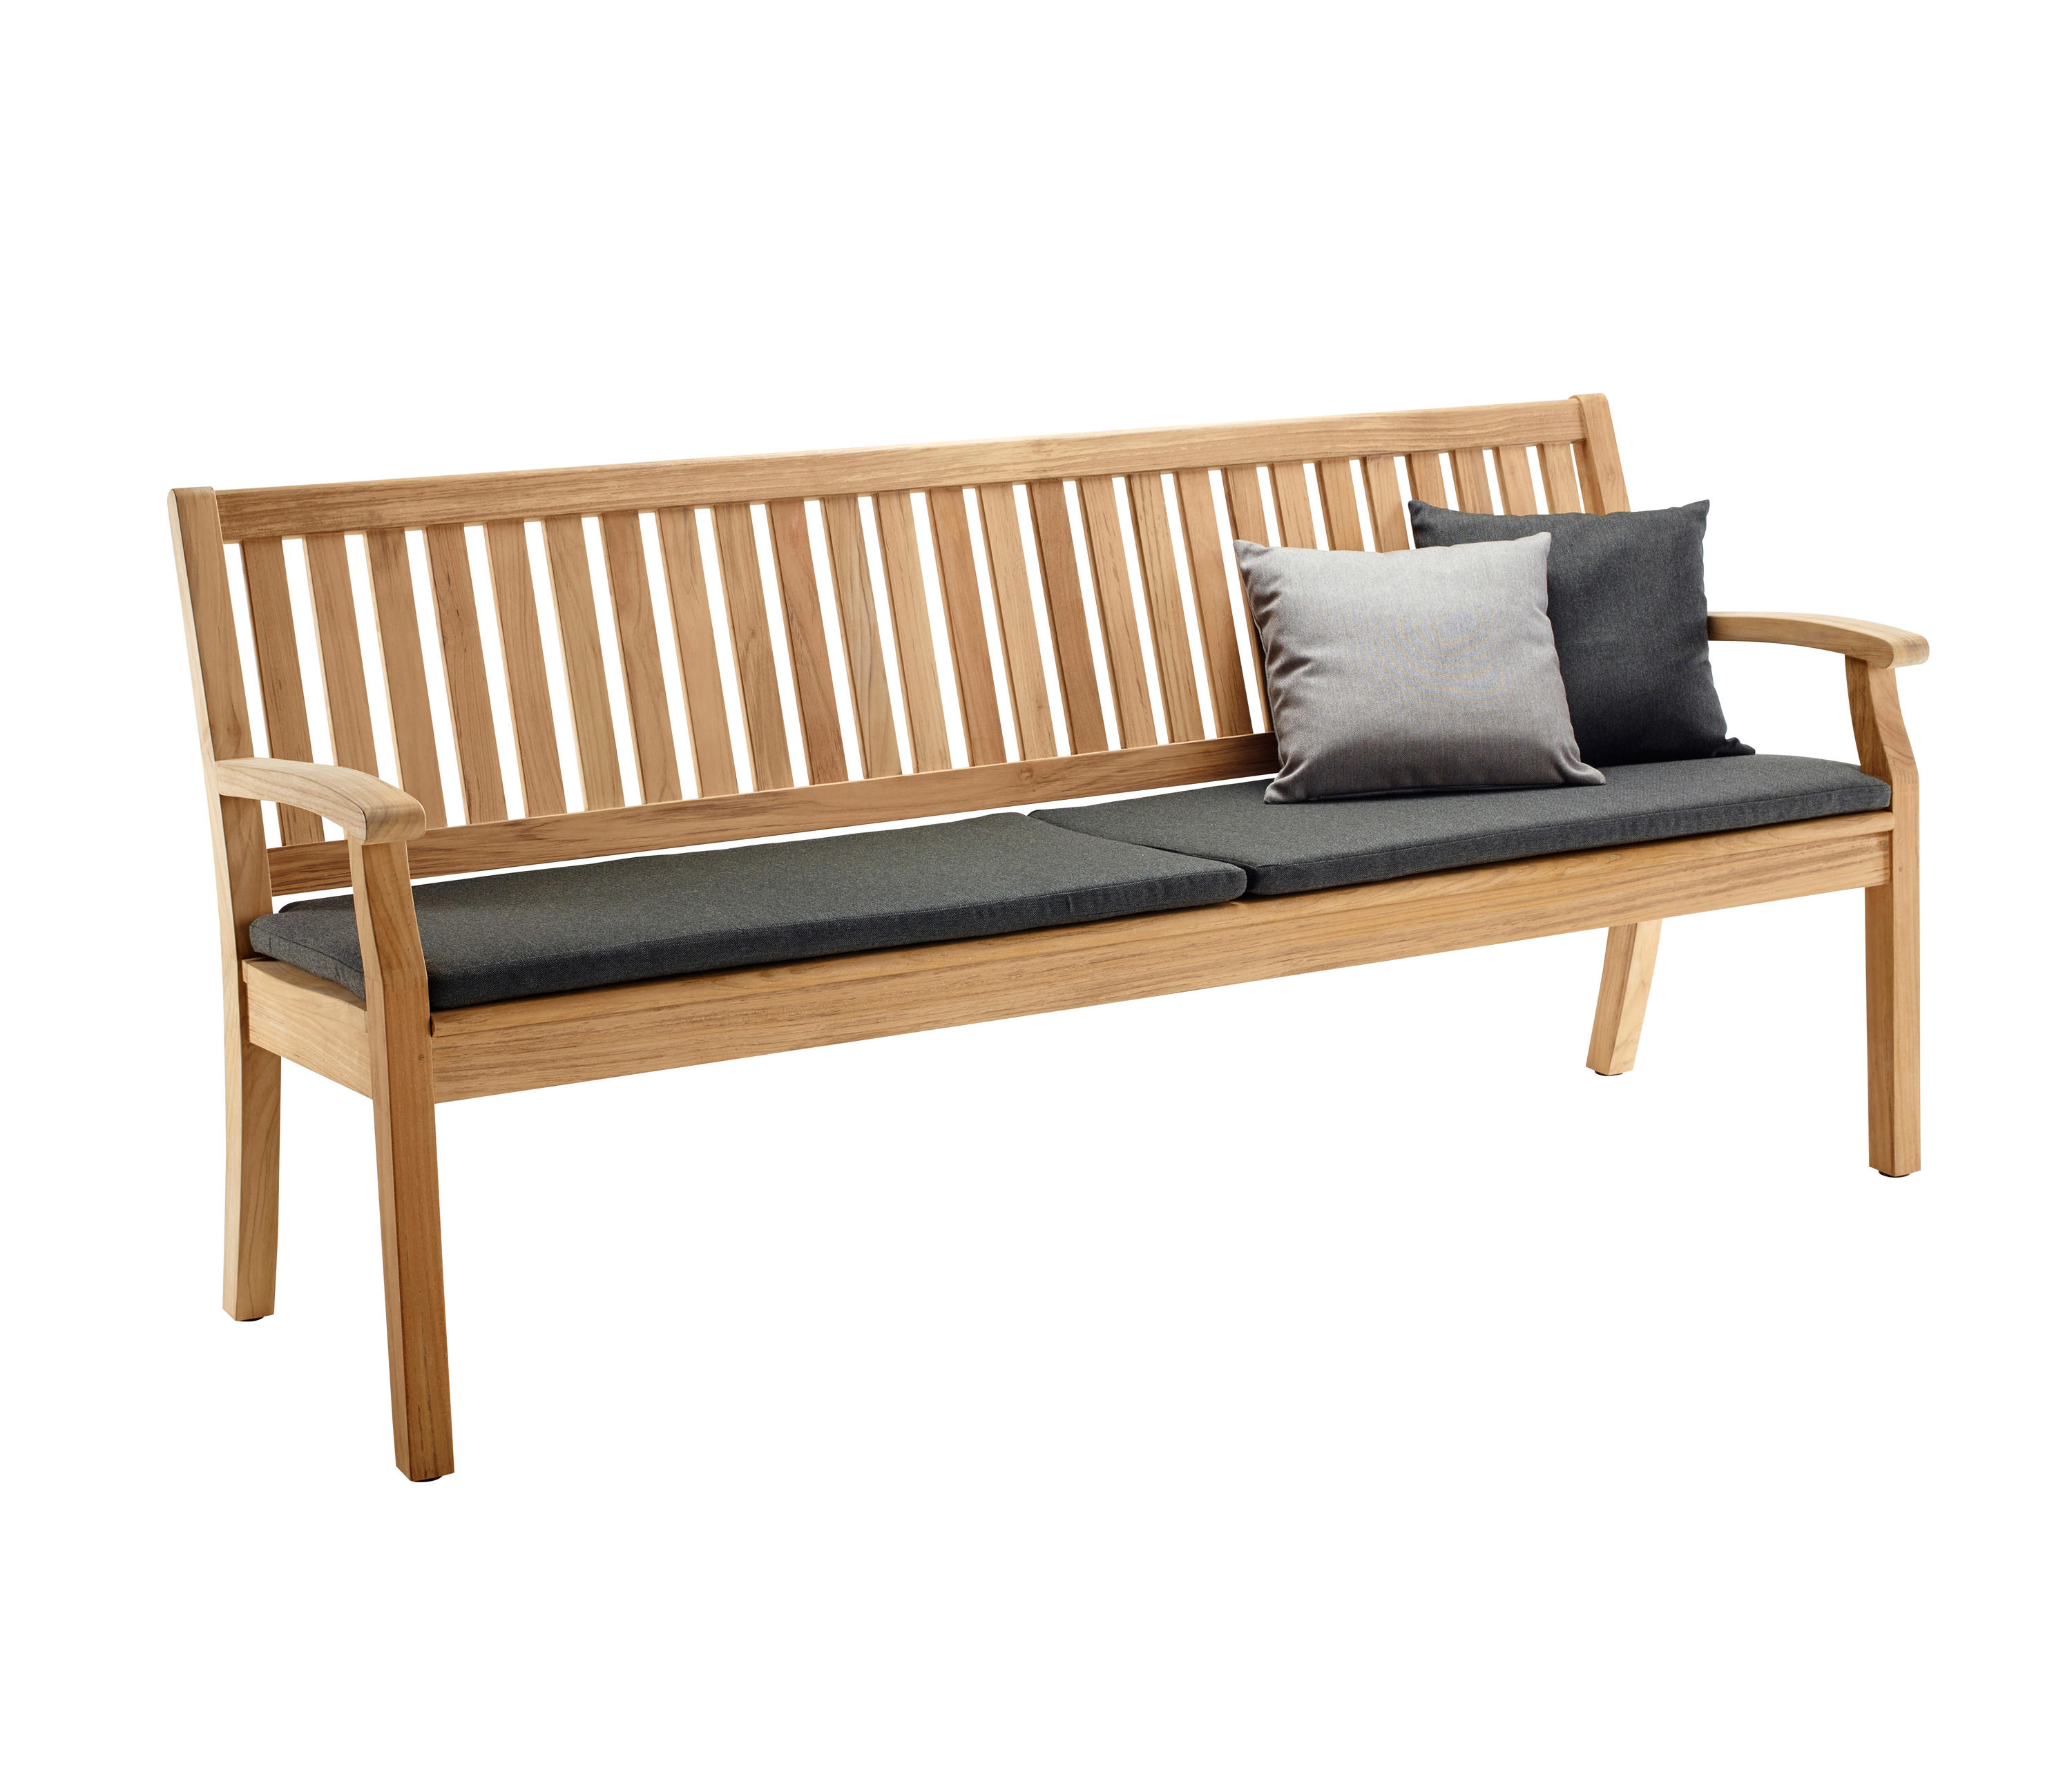 Windsor Bench With Arm And Back Large Garden Benches From Solpuri Architonic